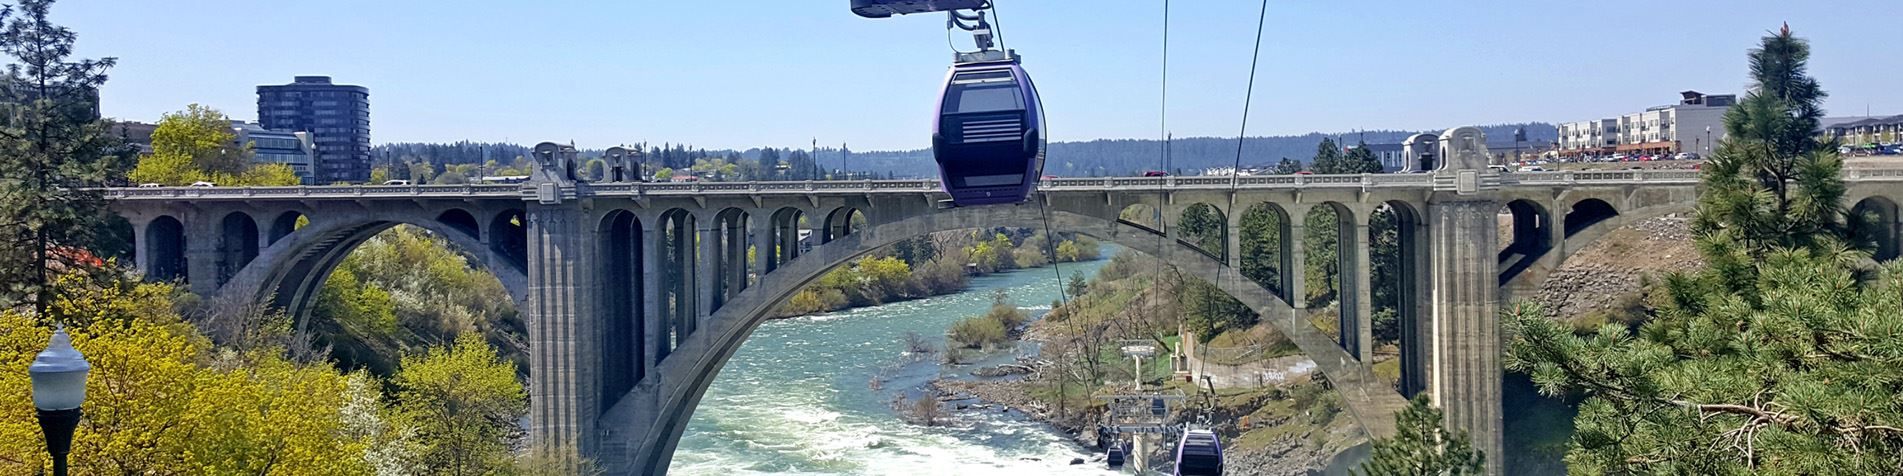 Banner Skyride over Spokane River